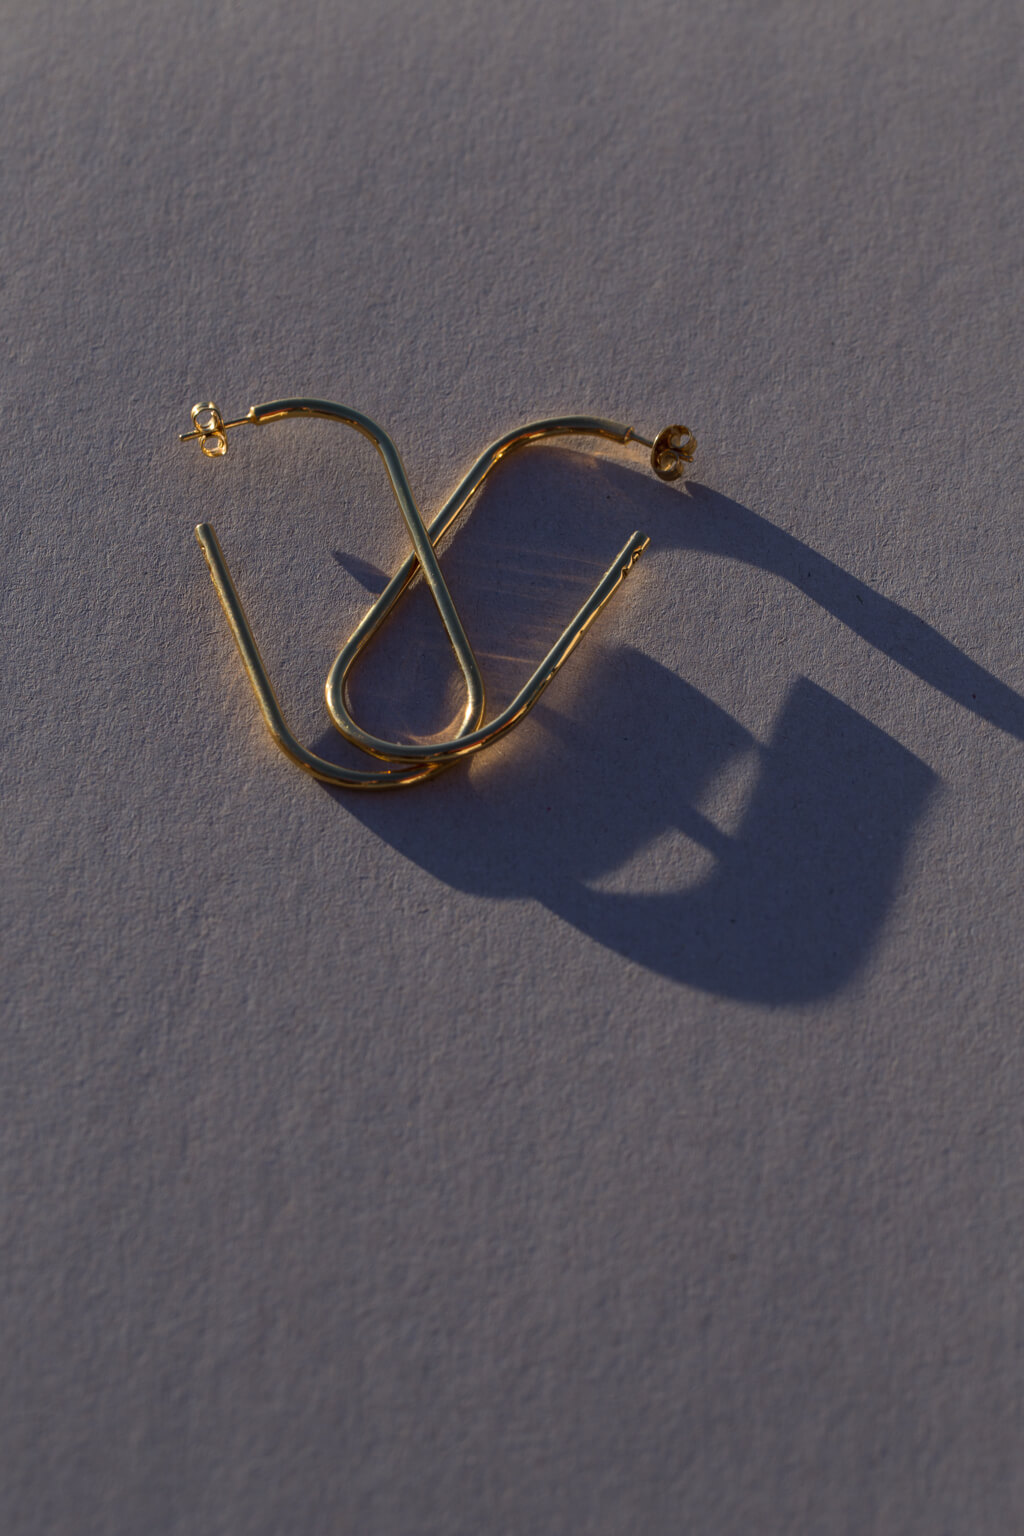 the-xxl-golden-link-earring-by-glenda-lopez-alta